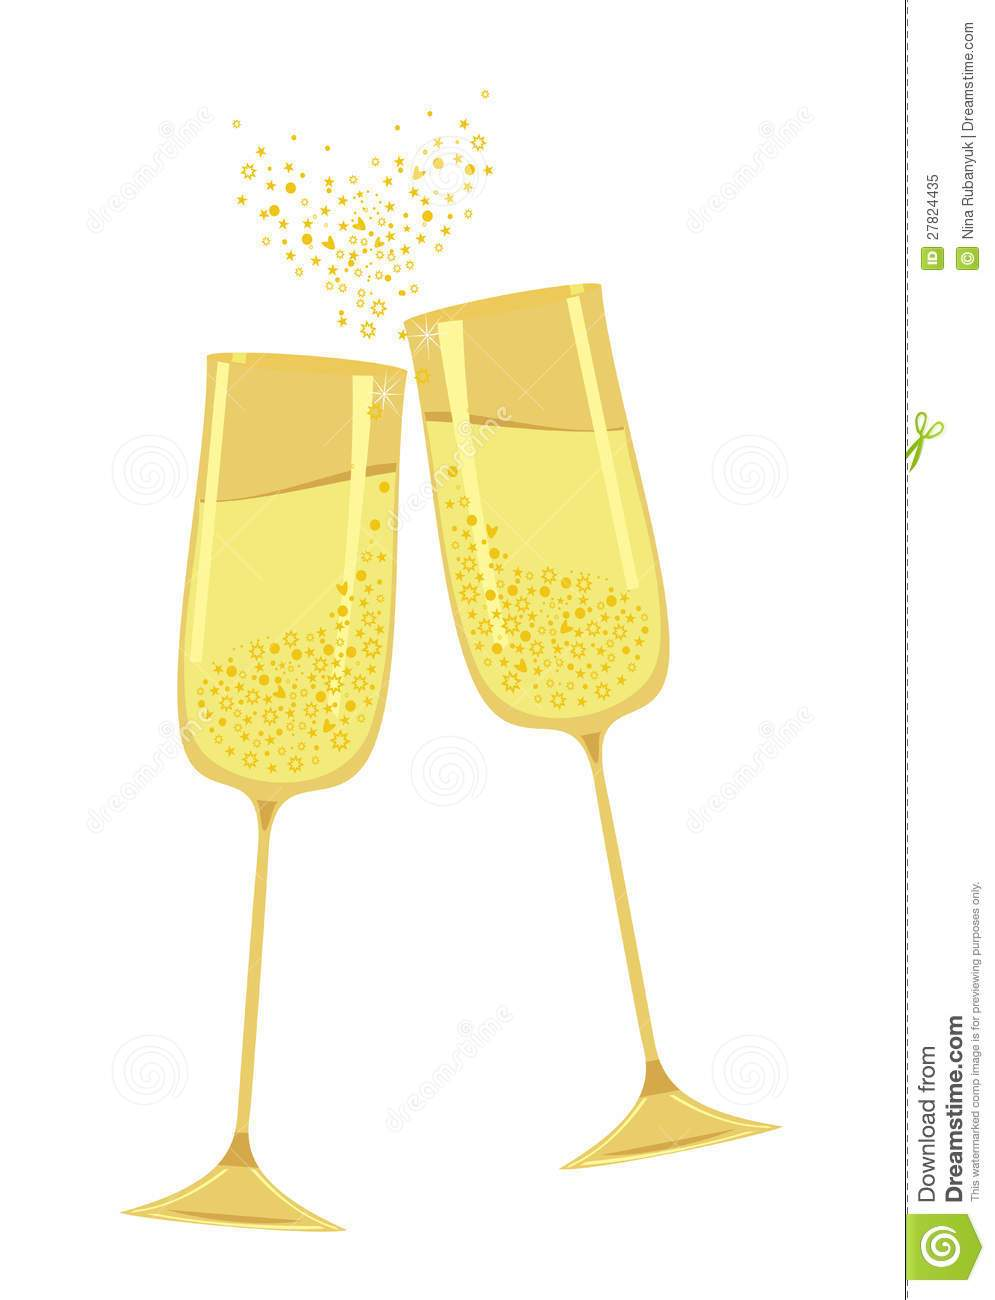 Gold champagne glass clipart png free stock Gold champagne glass clipart 1 » Clipart Portal png free stock